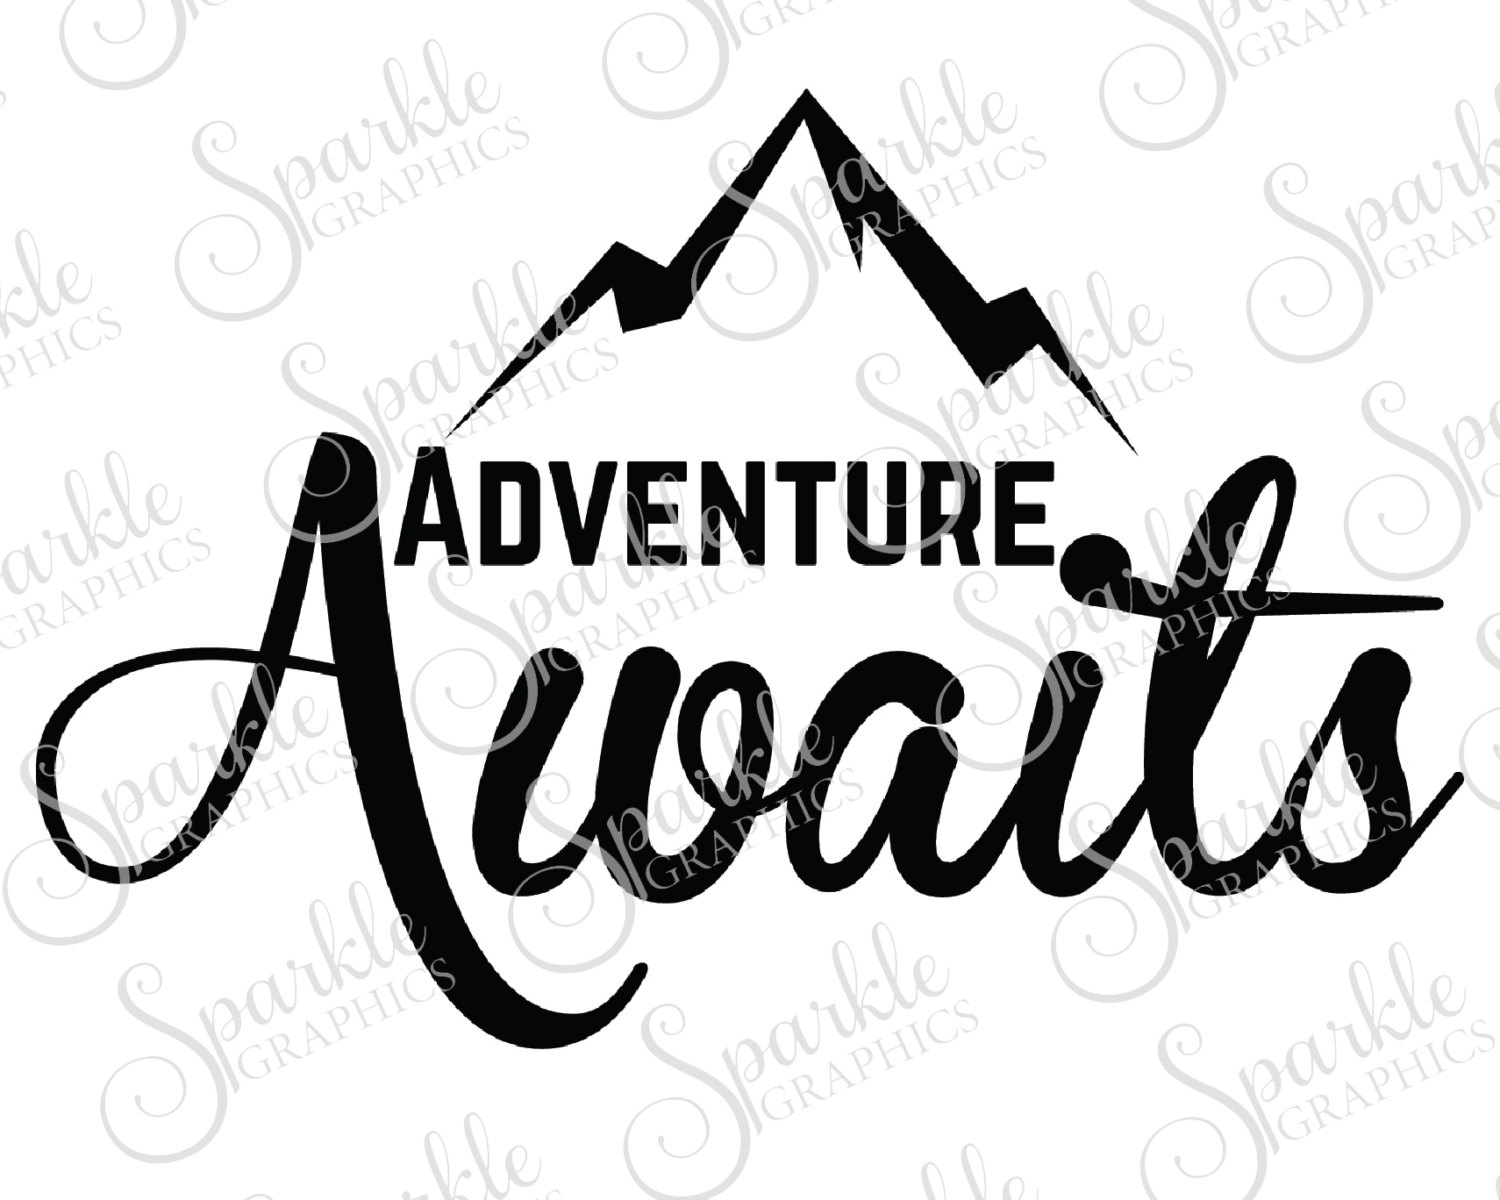 1500x1200 Adventure Awaits Cut File Adventure Wanderlust Travel Hiking